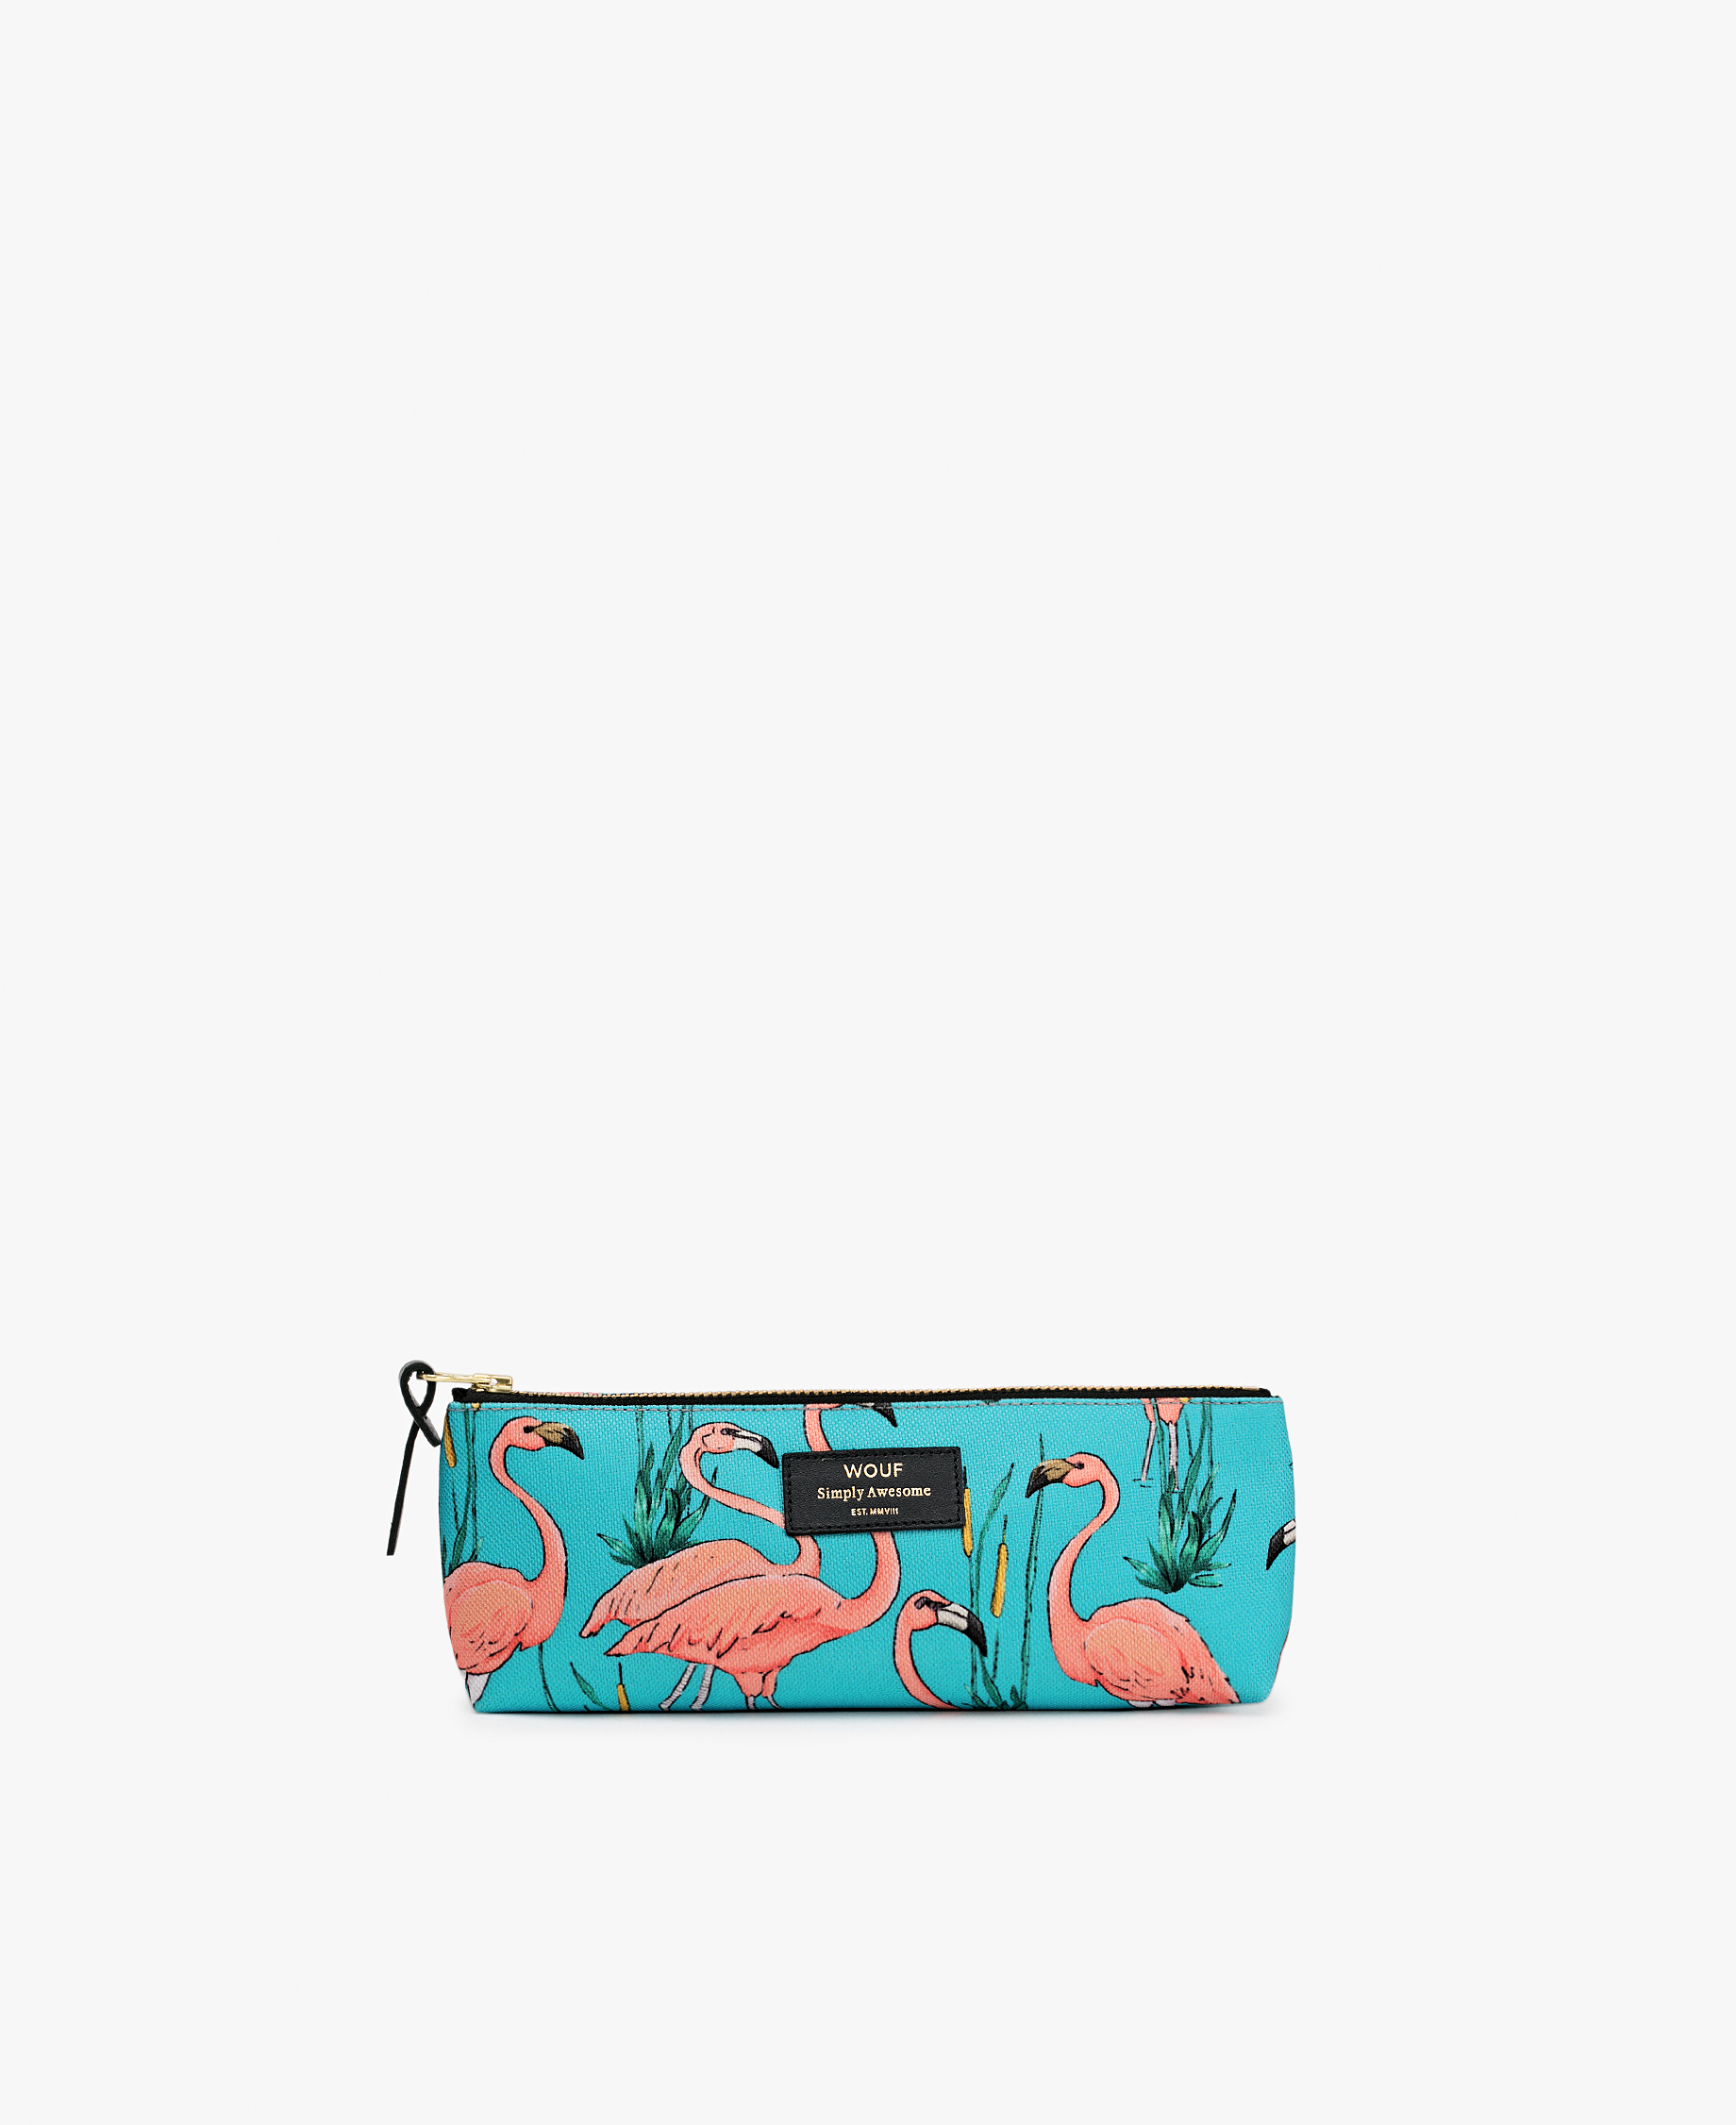 blue pencil pouch bag